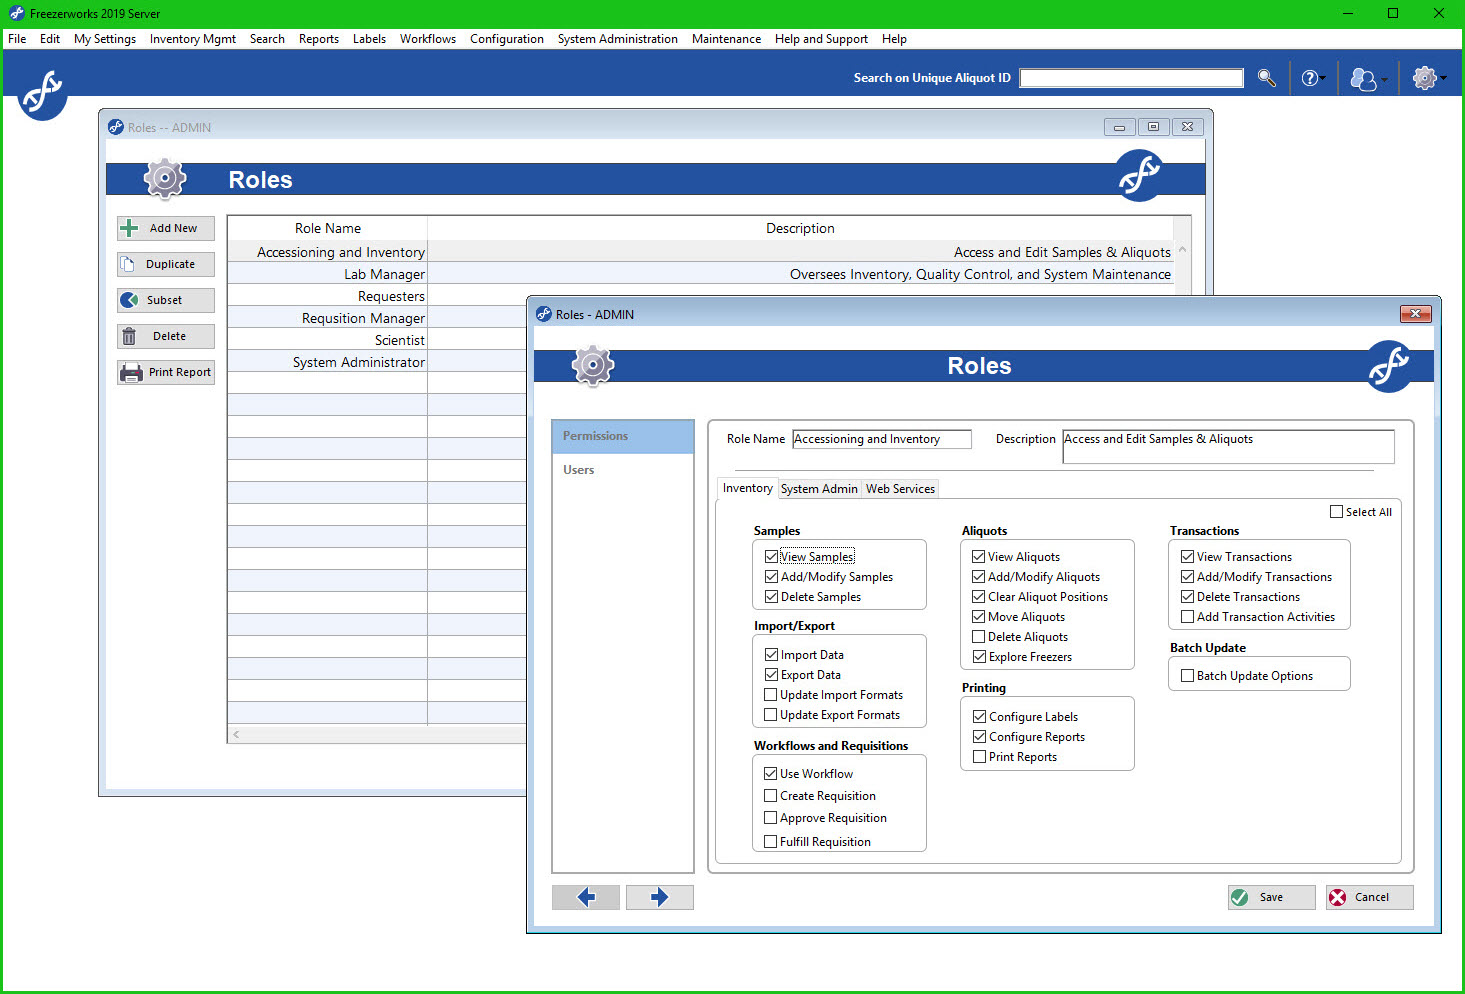 Ascent Edition allows administrators to configure roles for efficient user provisioning